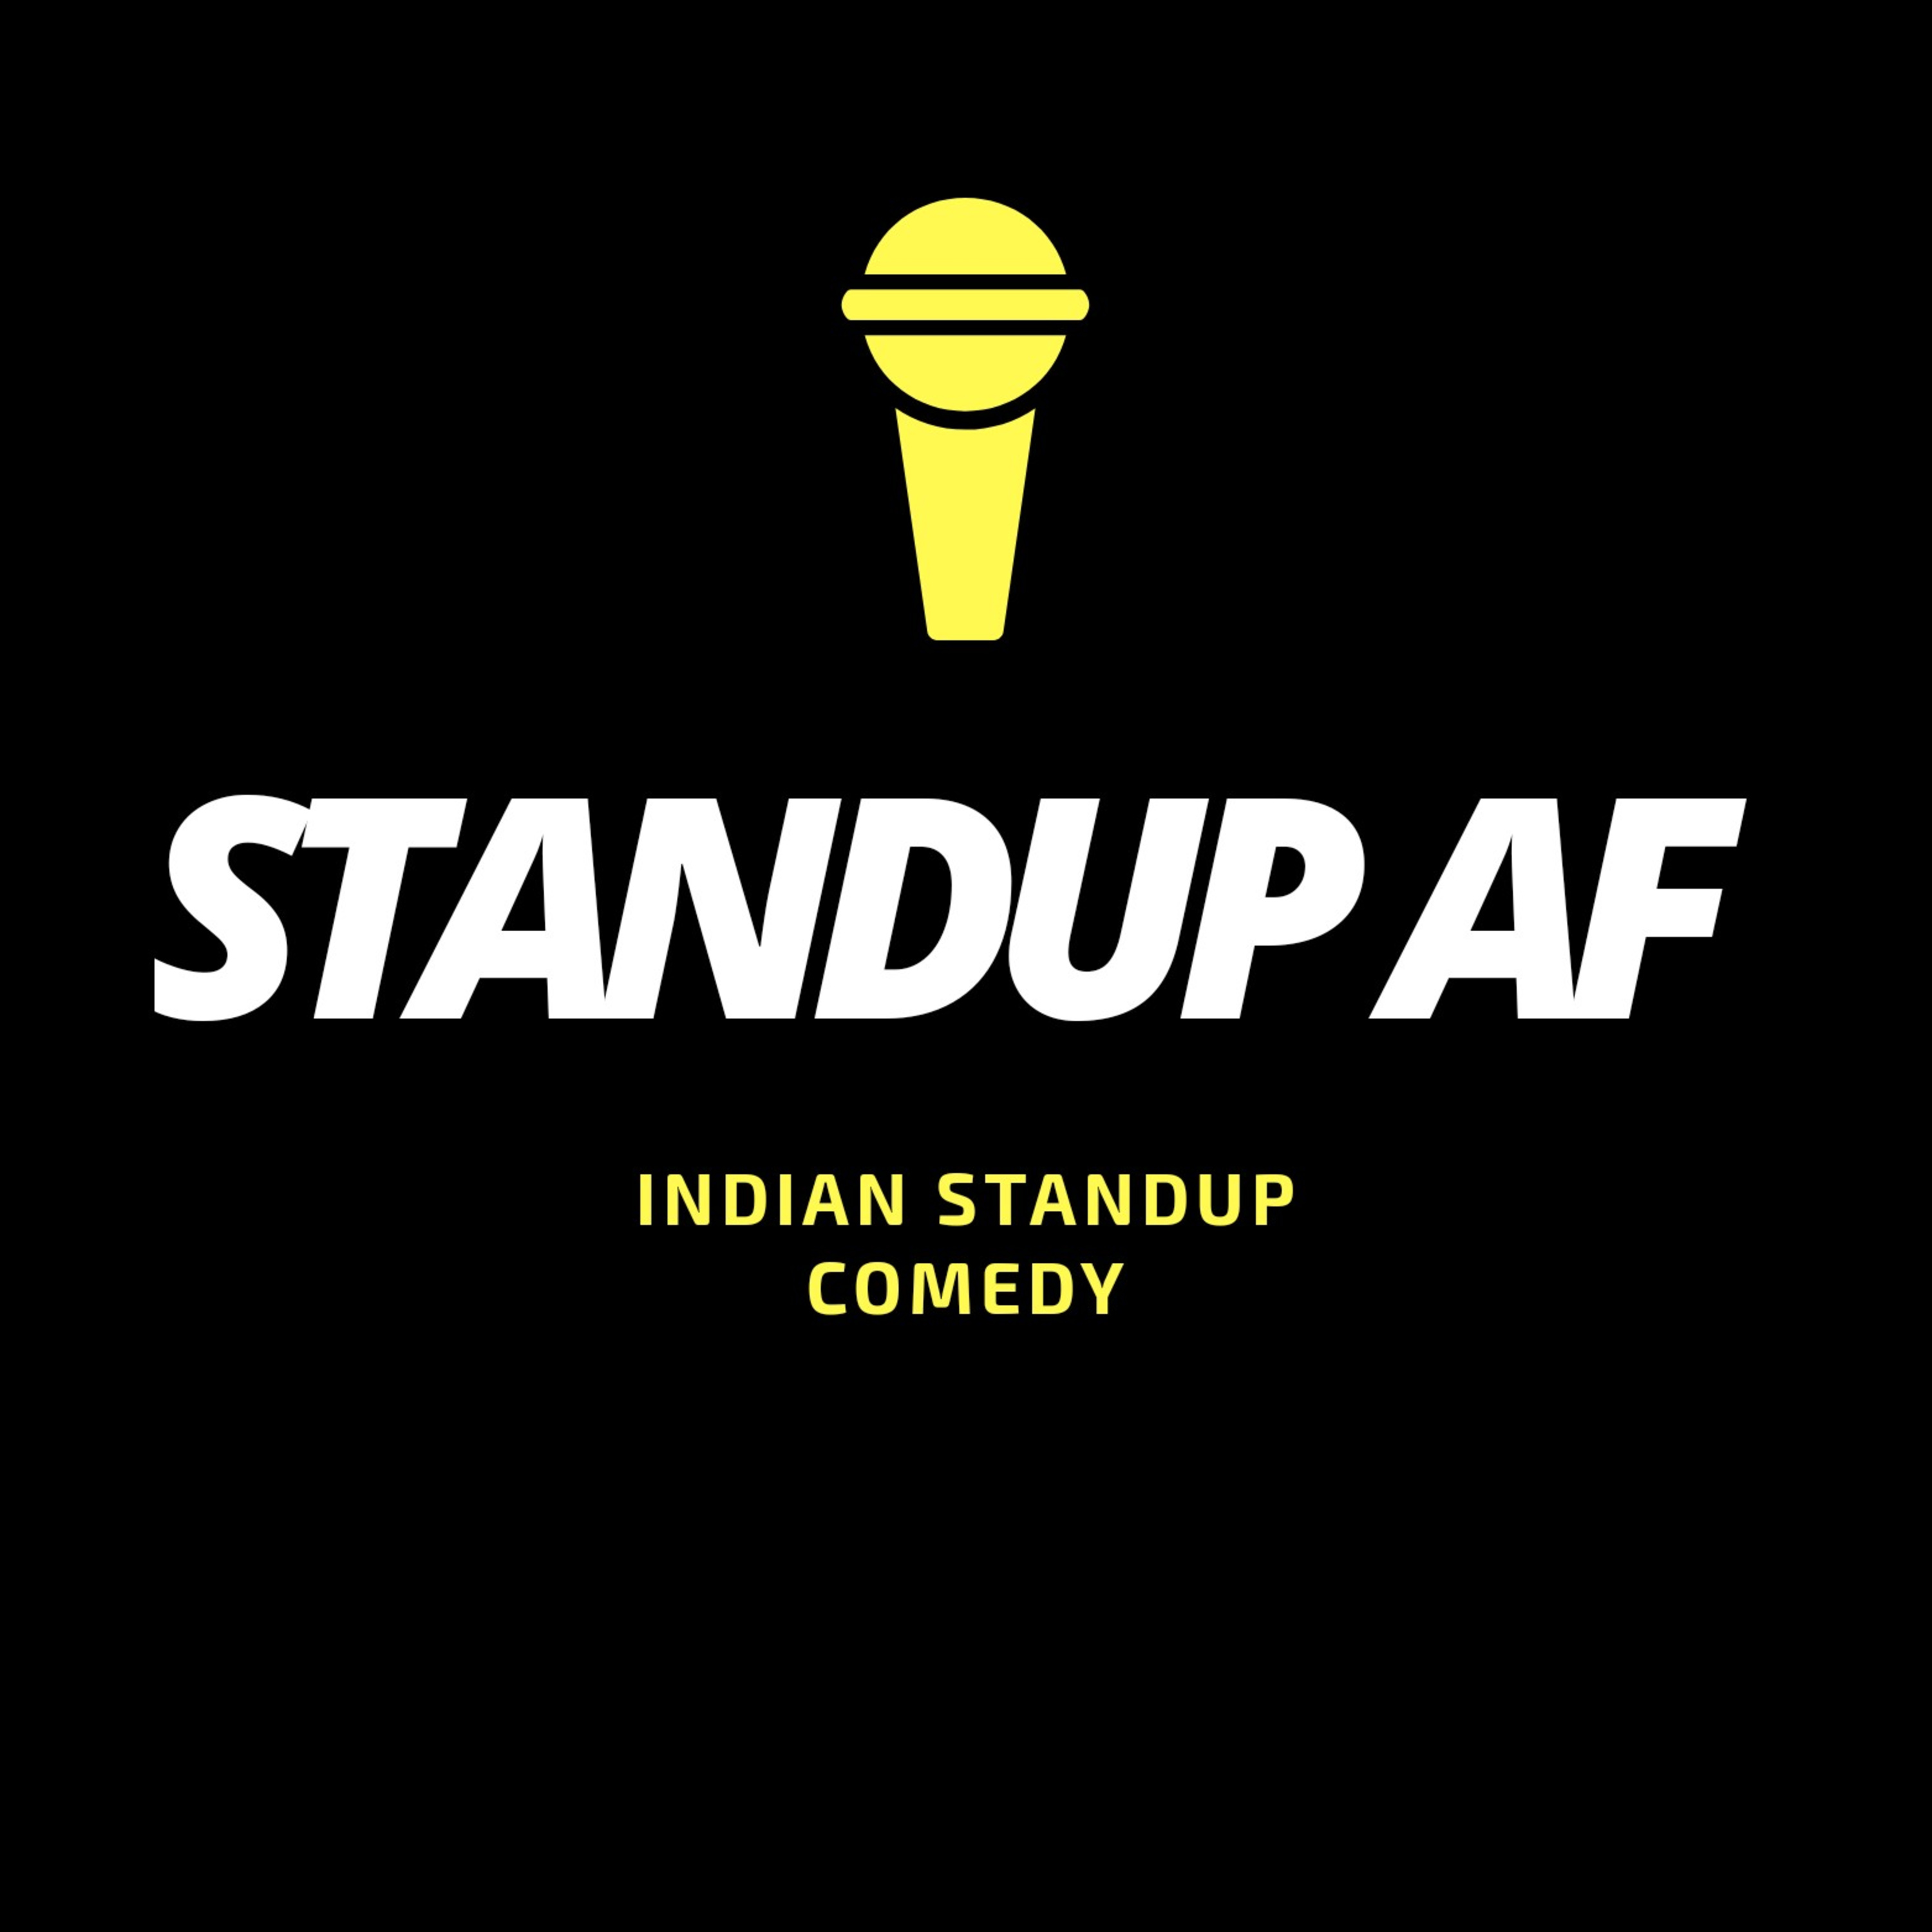 Best Indian Standup Comedy Videos by @standupaf